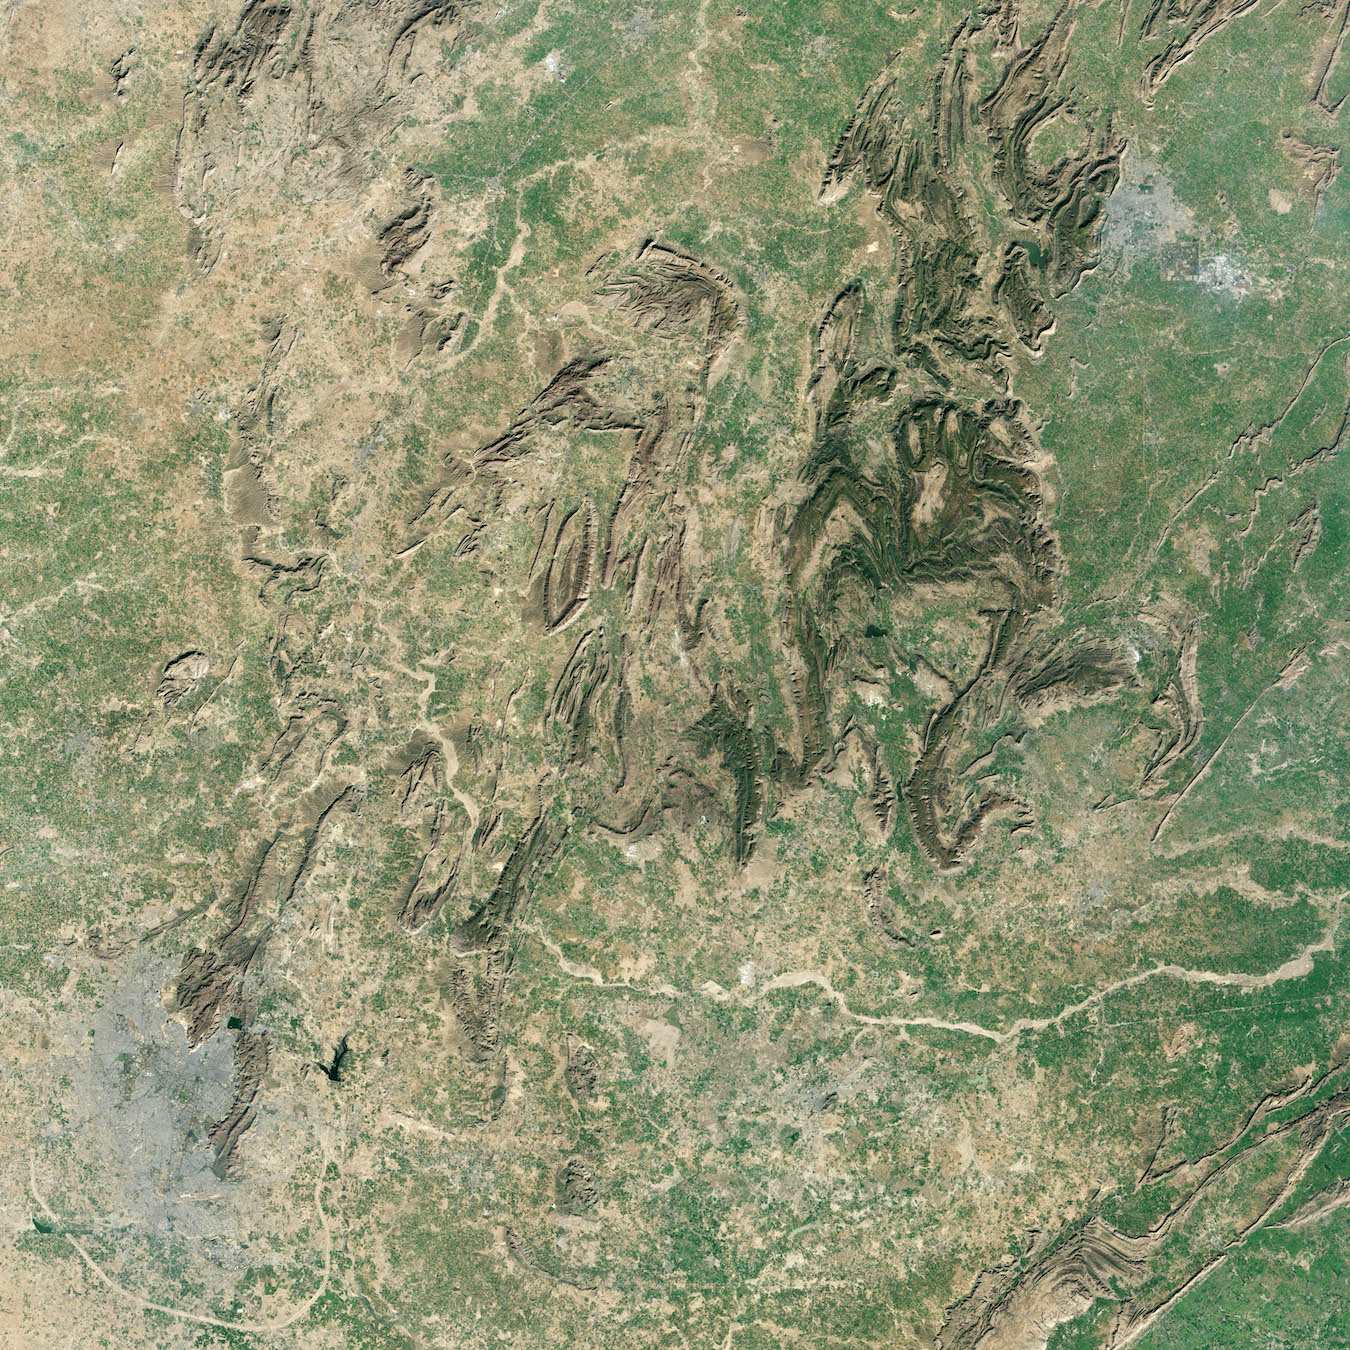 Today's Image of the Day comes thanks to the NASA Earth Observatory and features a look at the Aravalli mountain range in India.